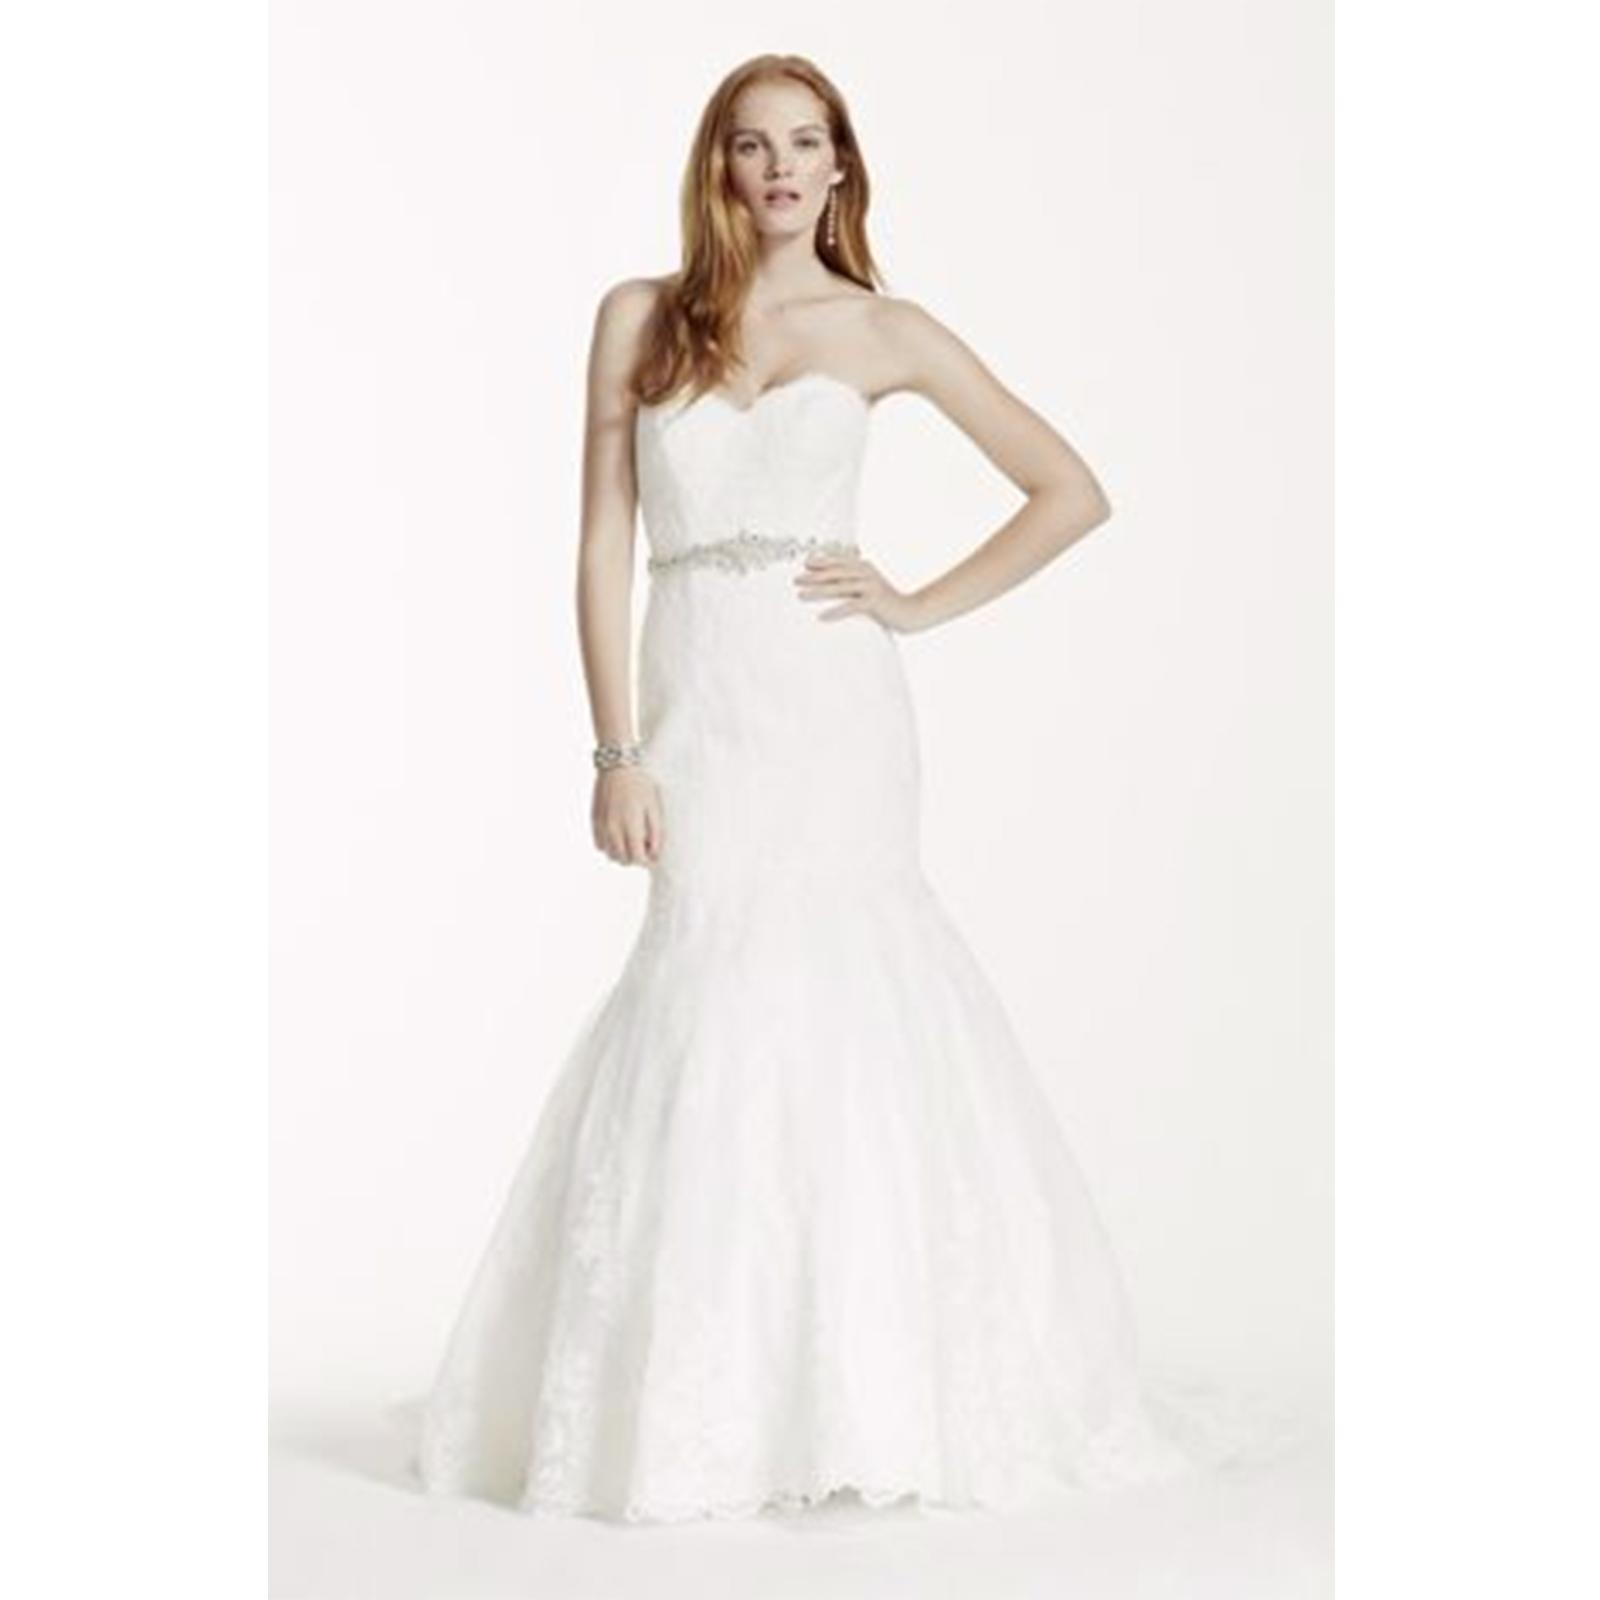 places to sell used wedding dresses st louis mo